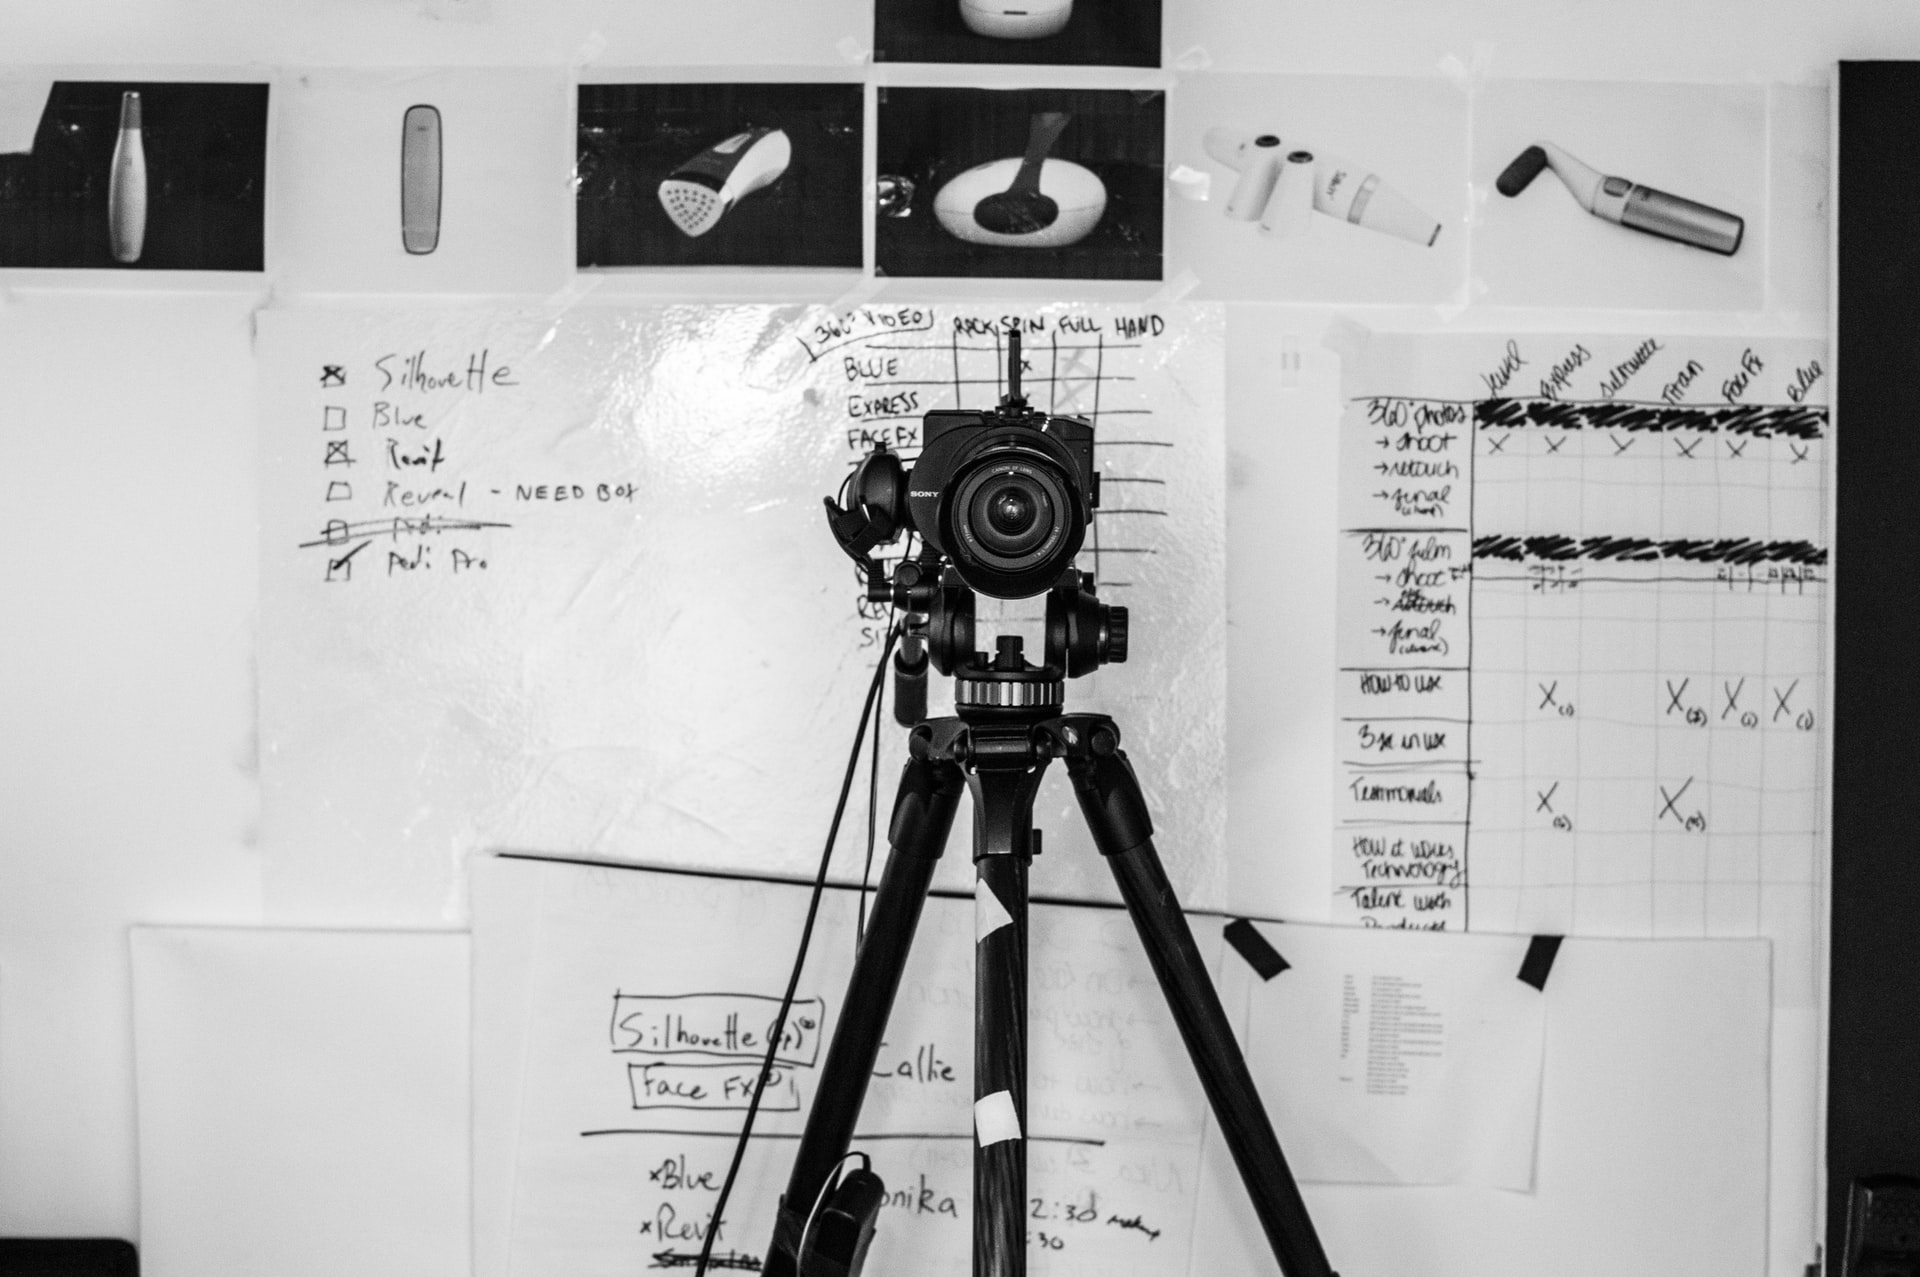 Fitness Photoshoot; A wall scribbled with researched papers behind a camera